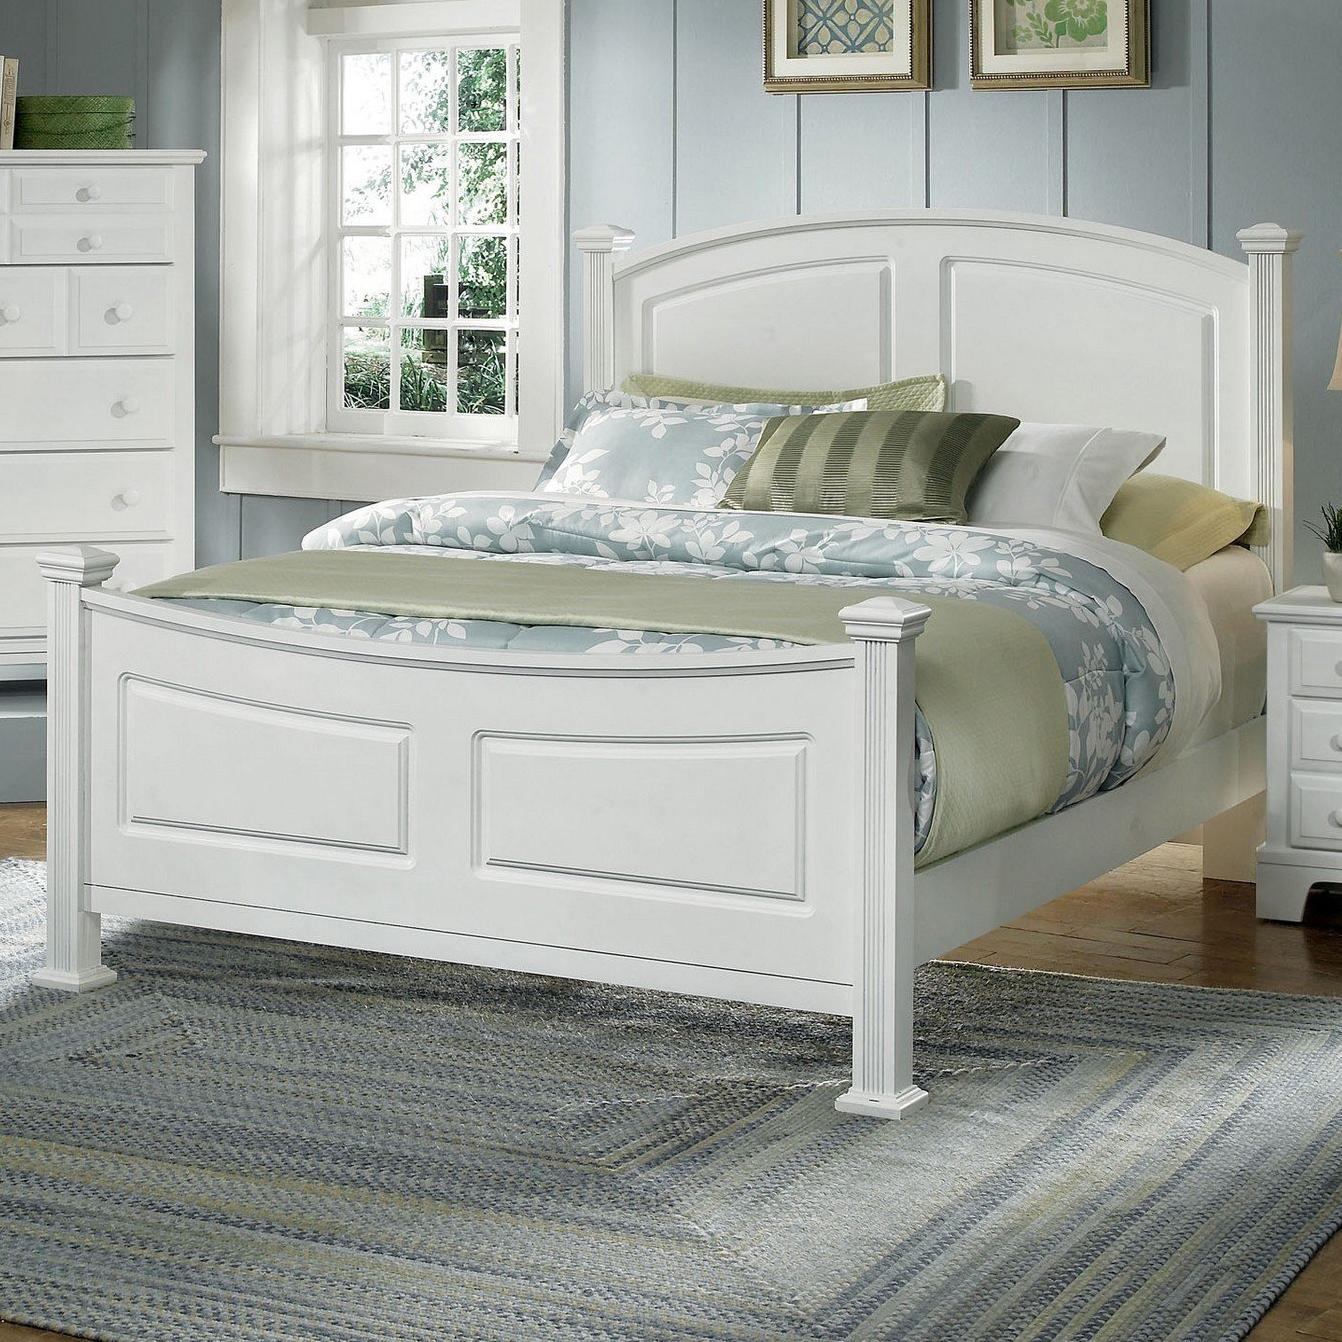 Vaughan Bassett Hamilton Franklin King Panel Bed - Item Number: BB6-668+866+922+MS1